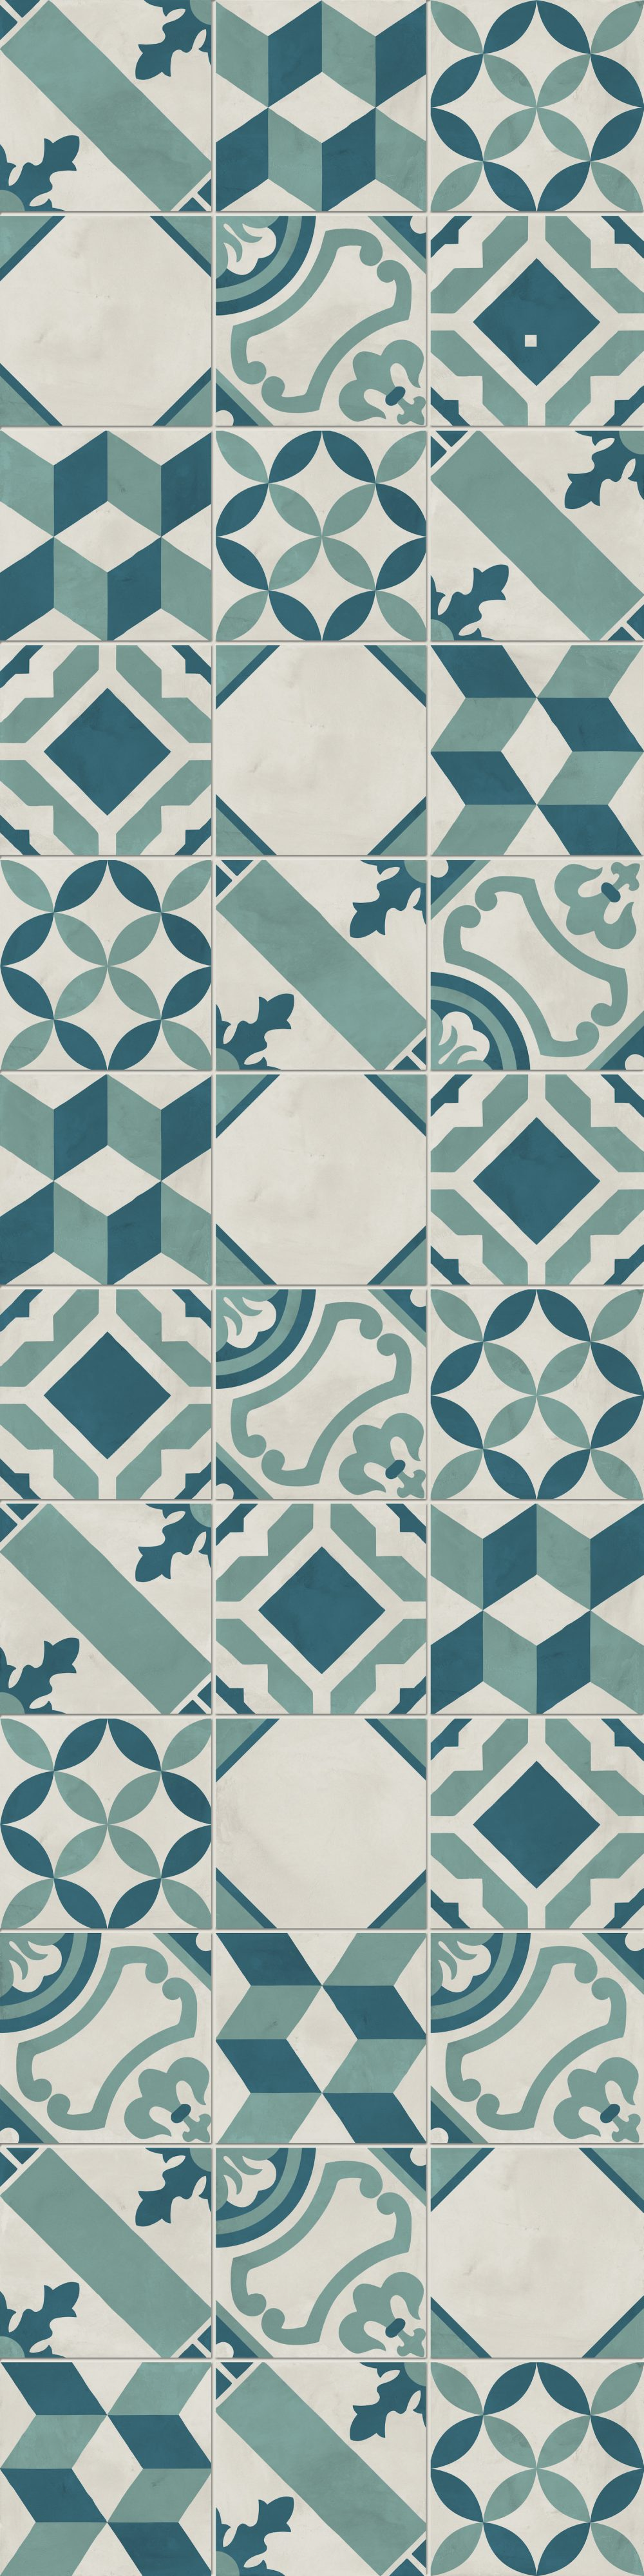 Moons Mix Patterned Tiles